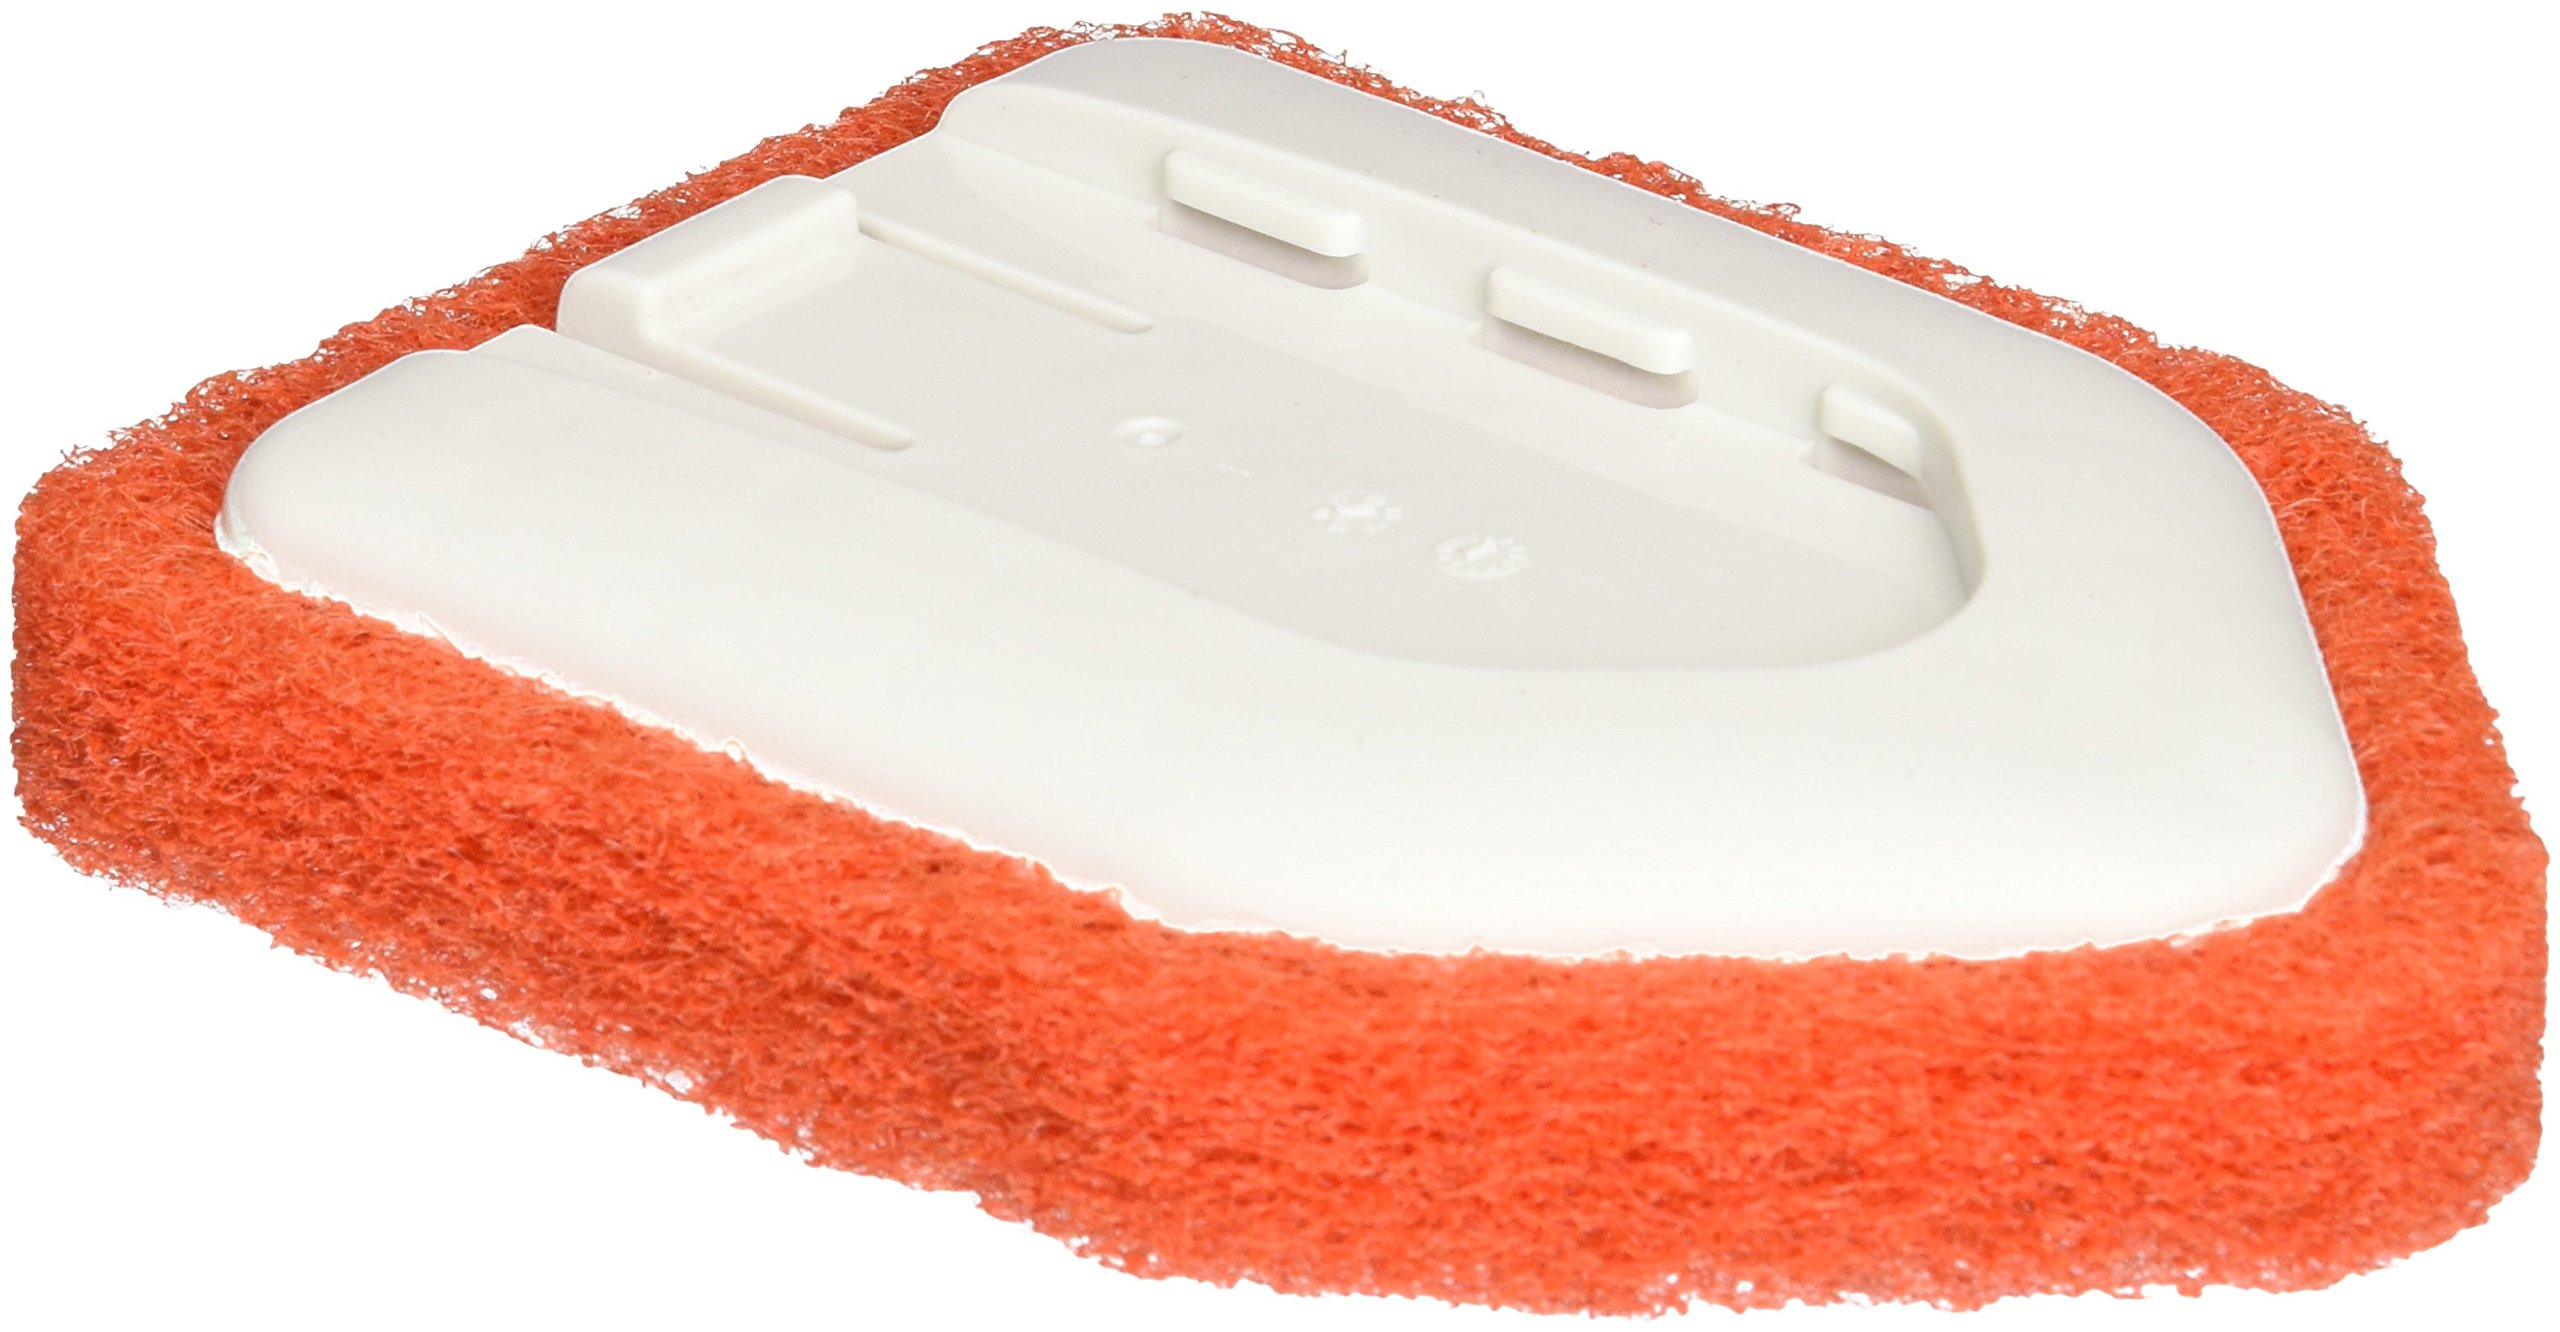 Refill Oxo Good Grips Tub And Tile Scrubber Refill